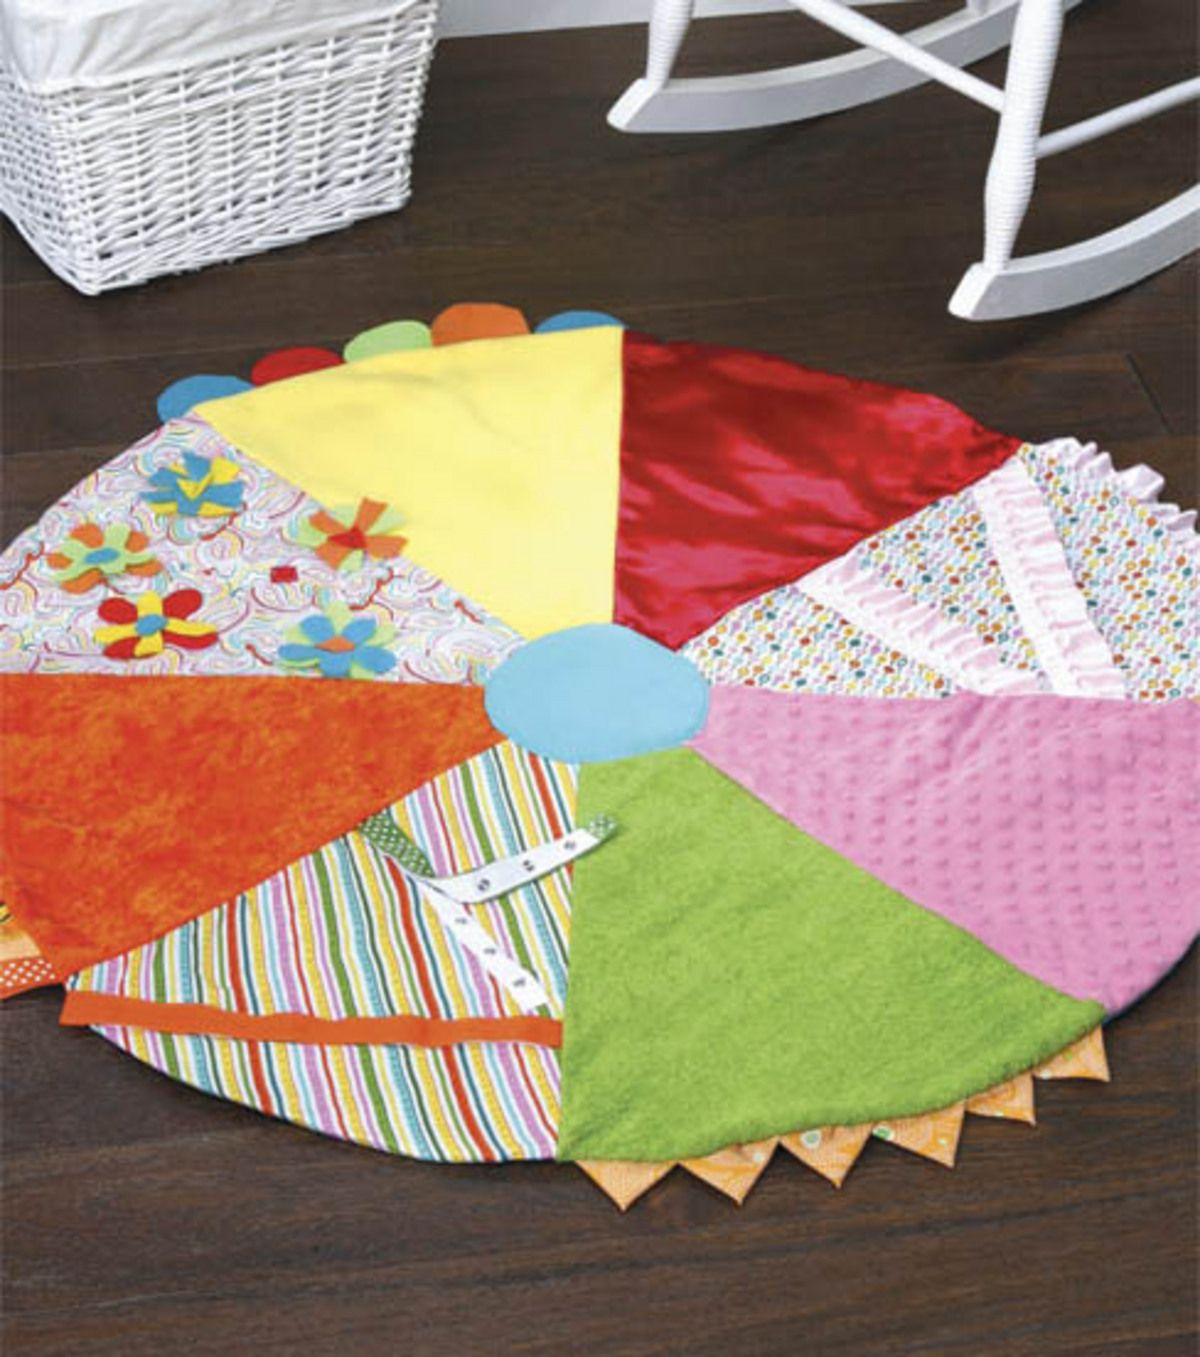 How To Make A Textured Play Mat For Baby